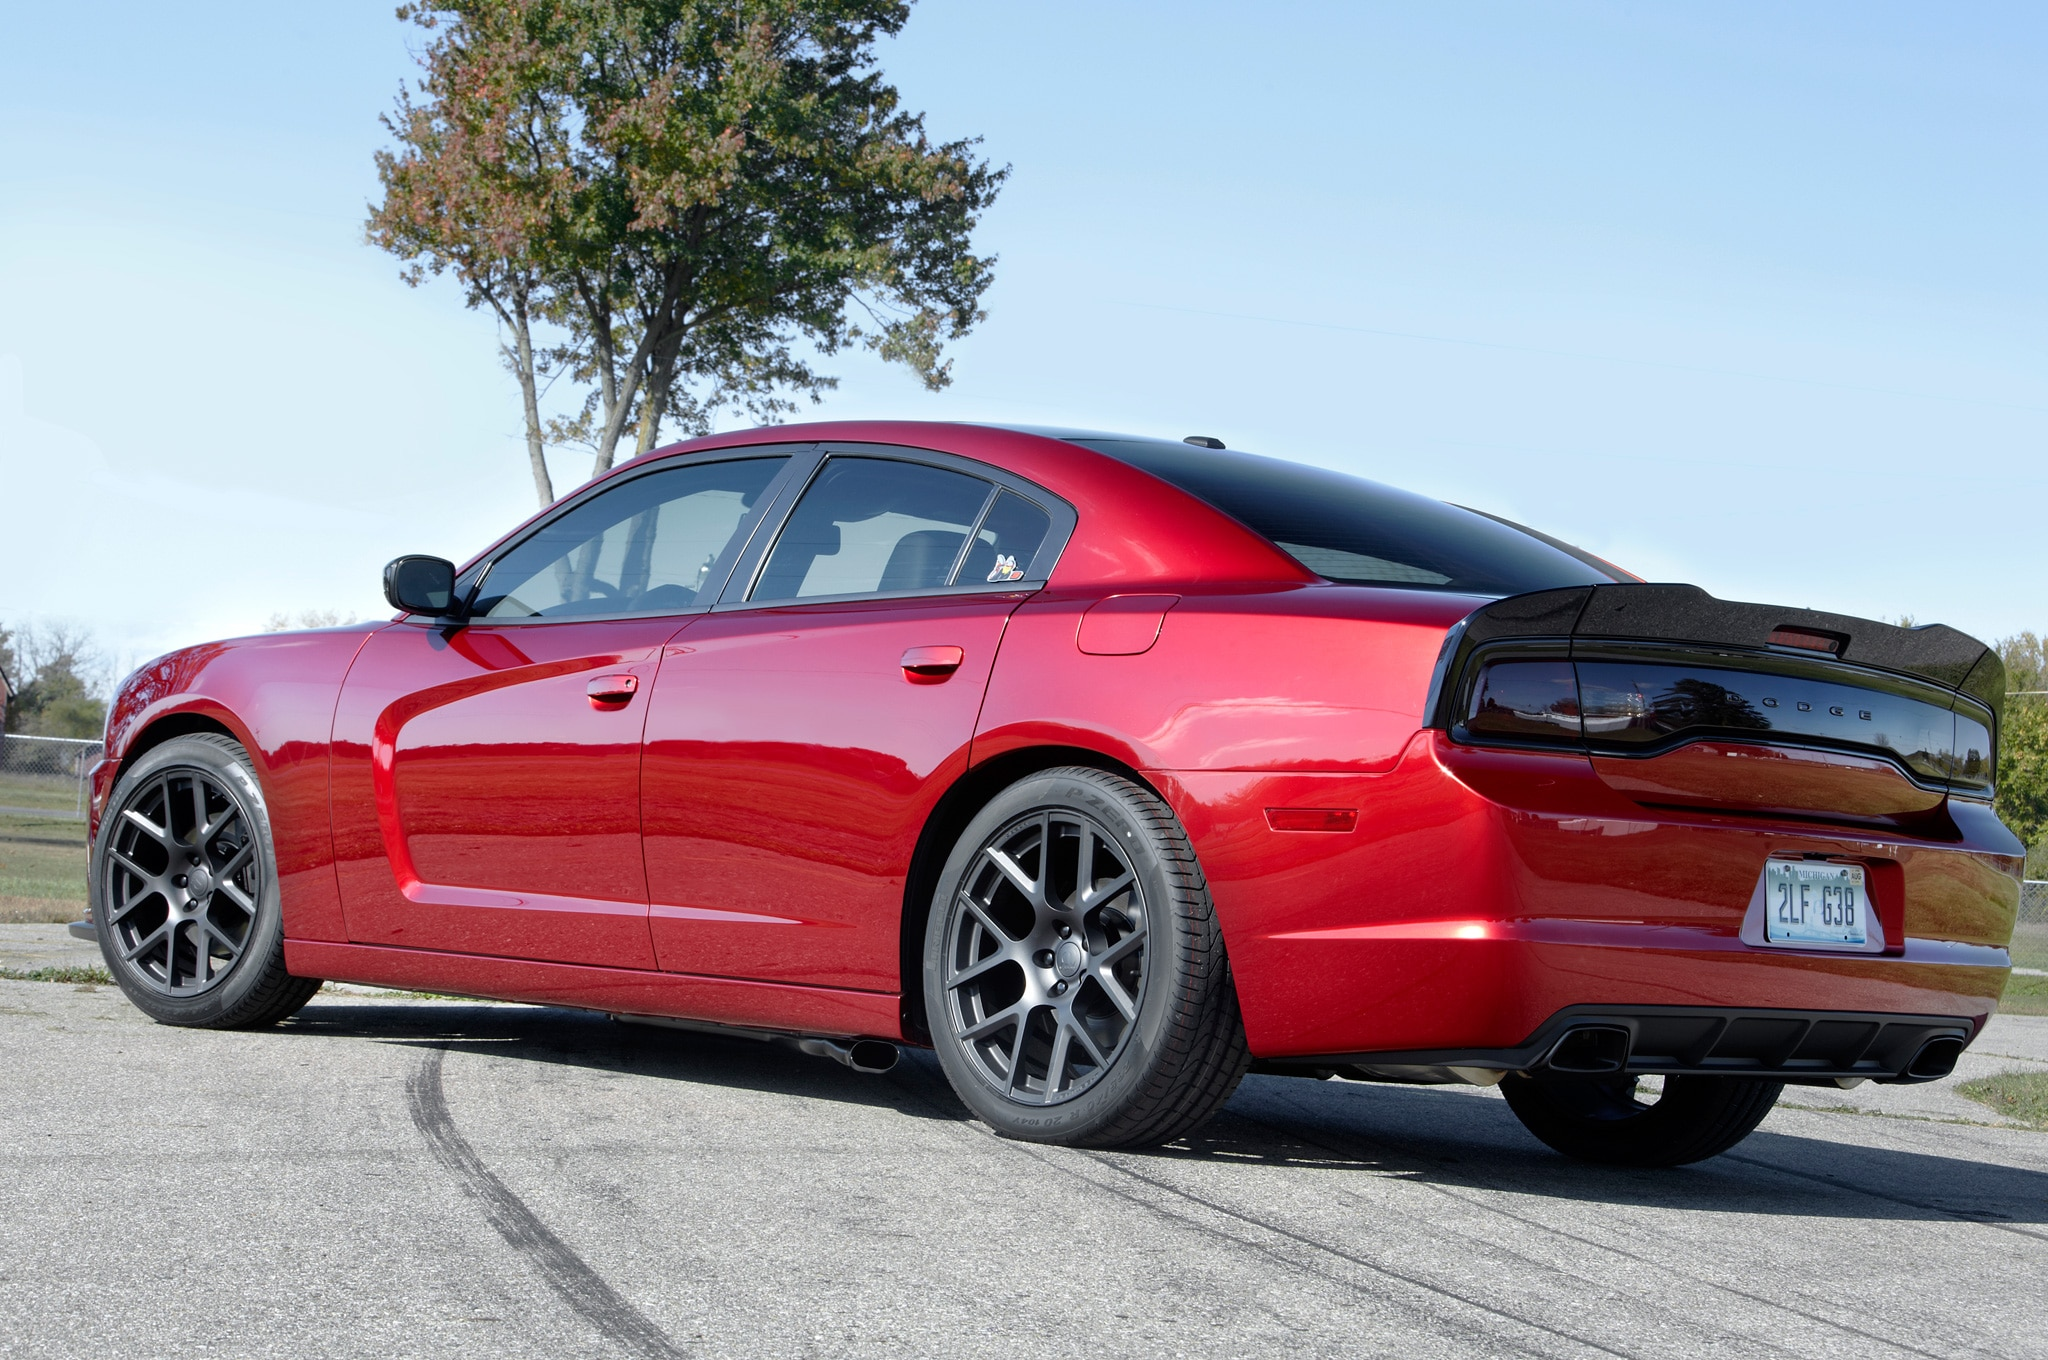 dodge charger 2014 rt. the dodge charger 2014 rt